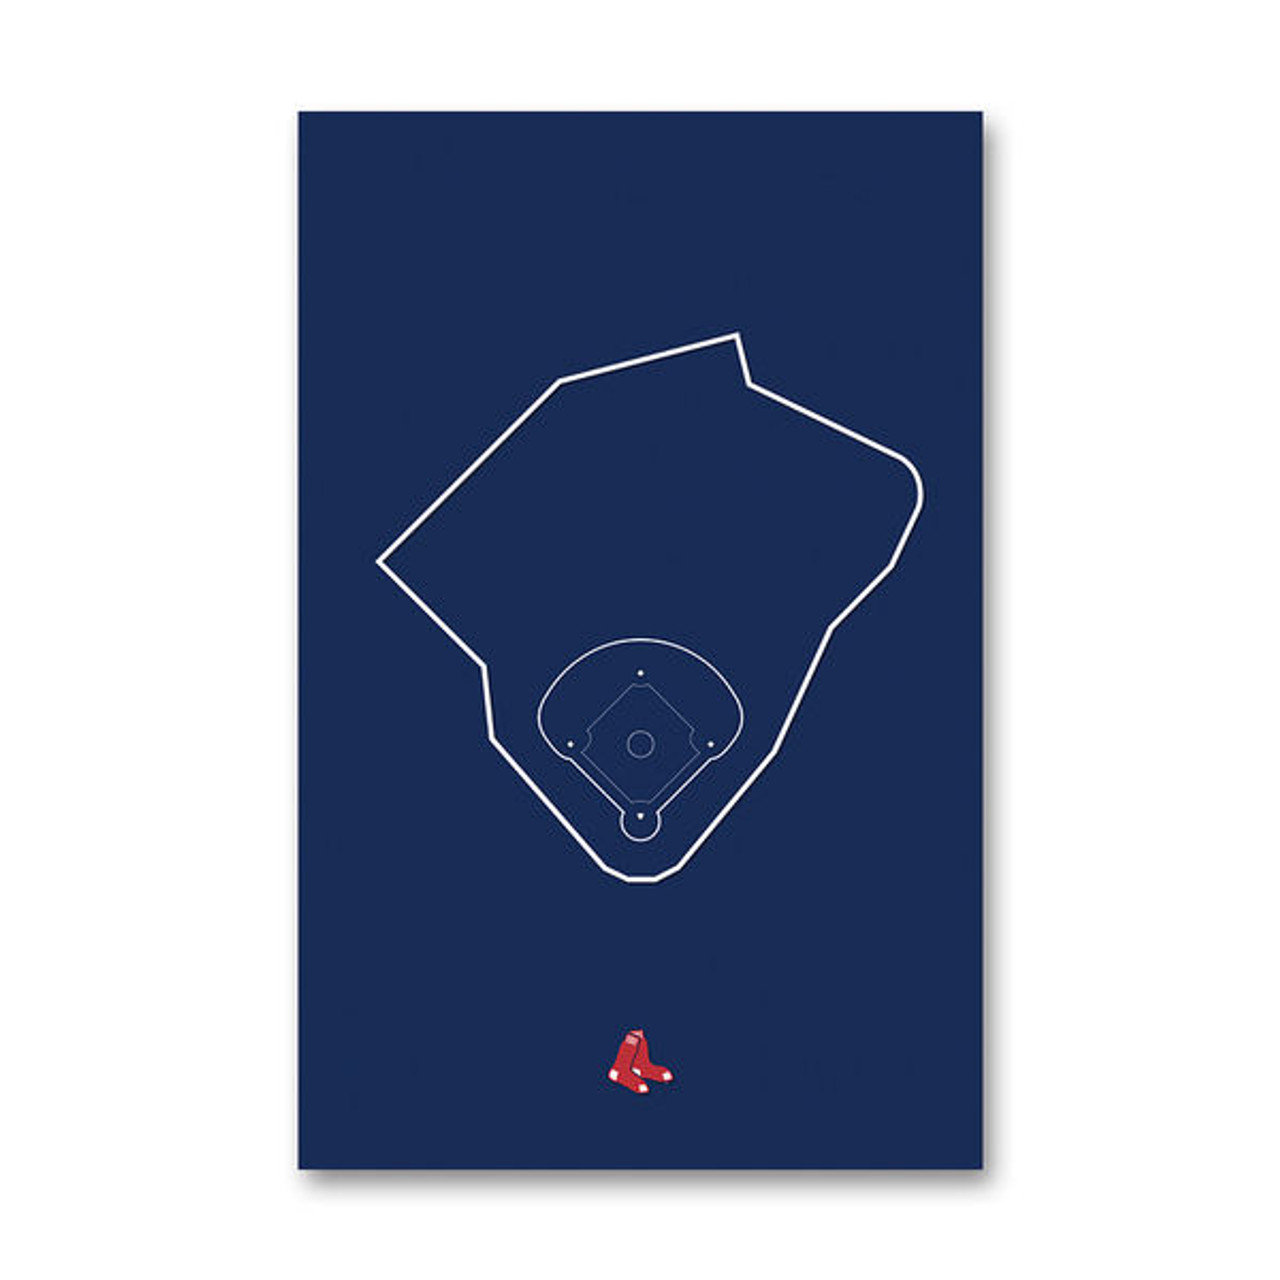 Fenway Park Outline - Boston Red Sox Art Poster